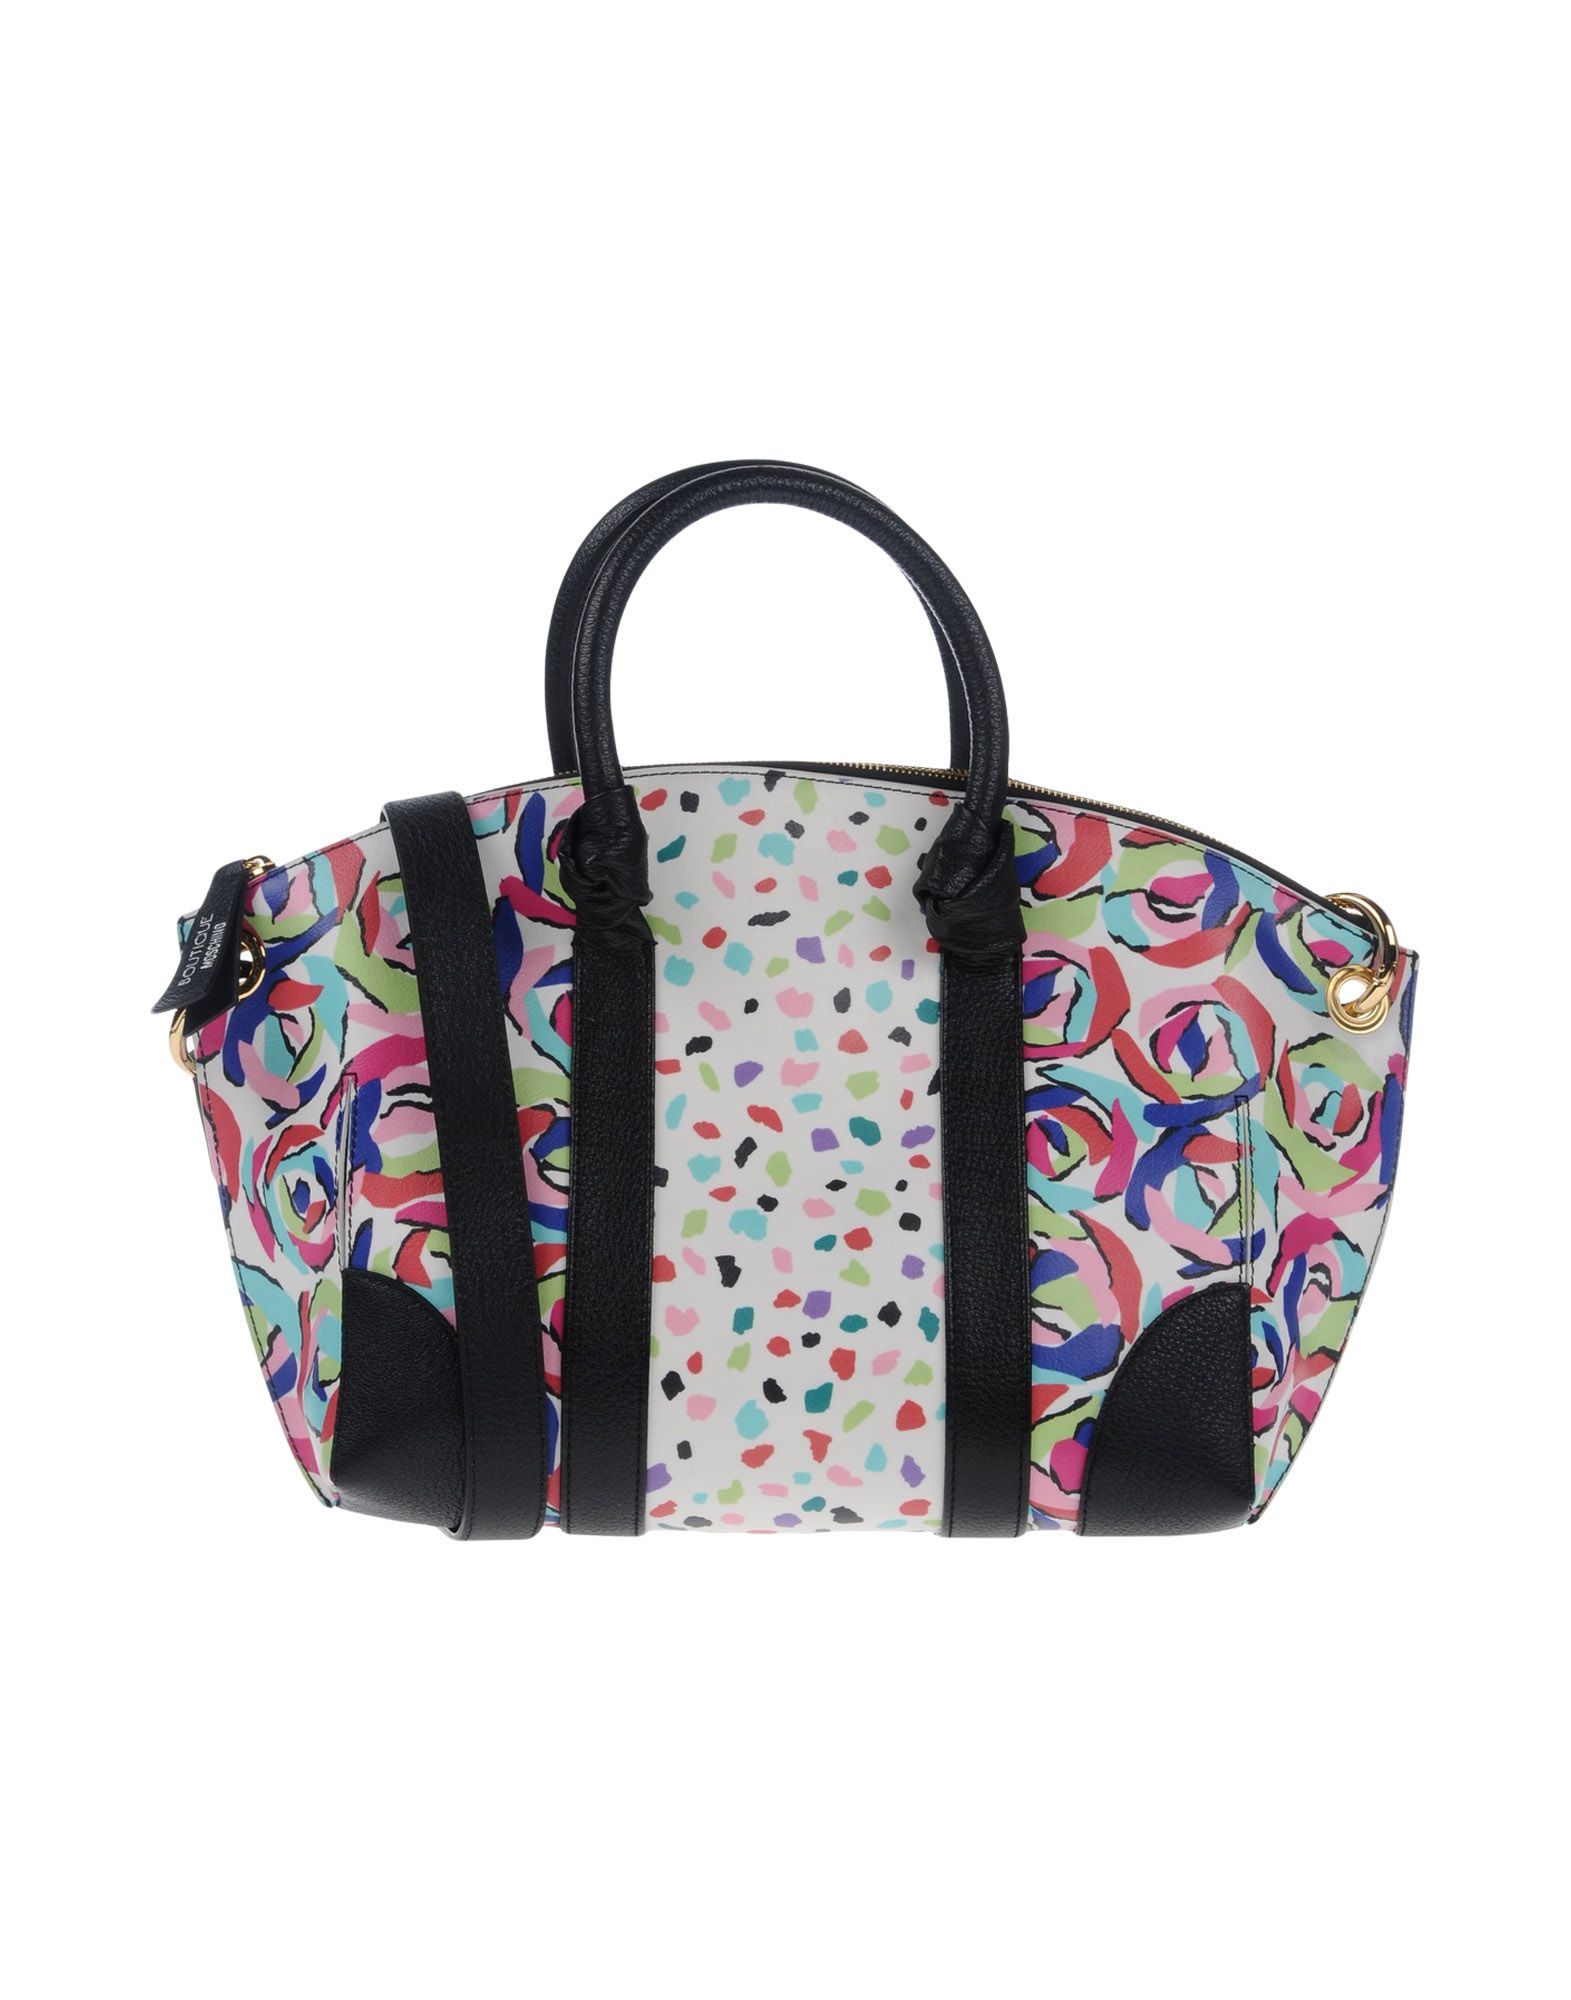 Borsa A Mano Boutique Moschino Donna - Acquista online su